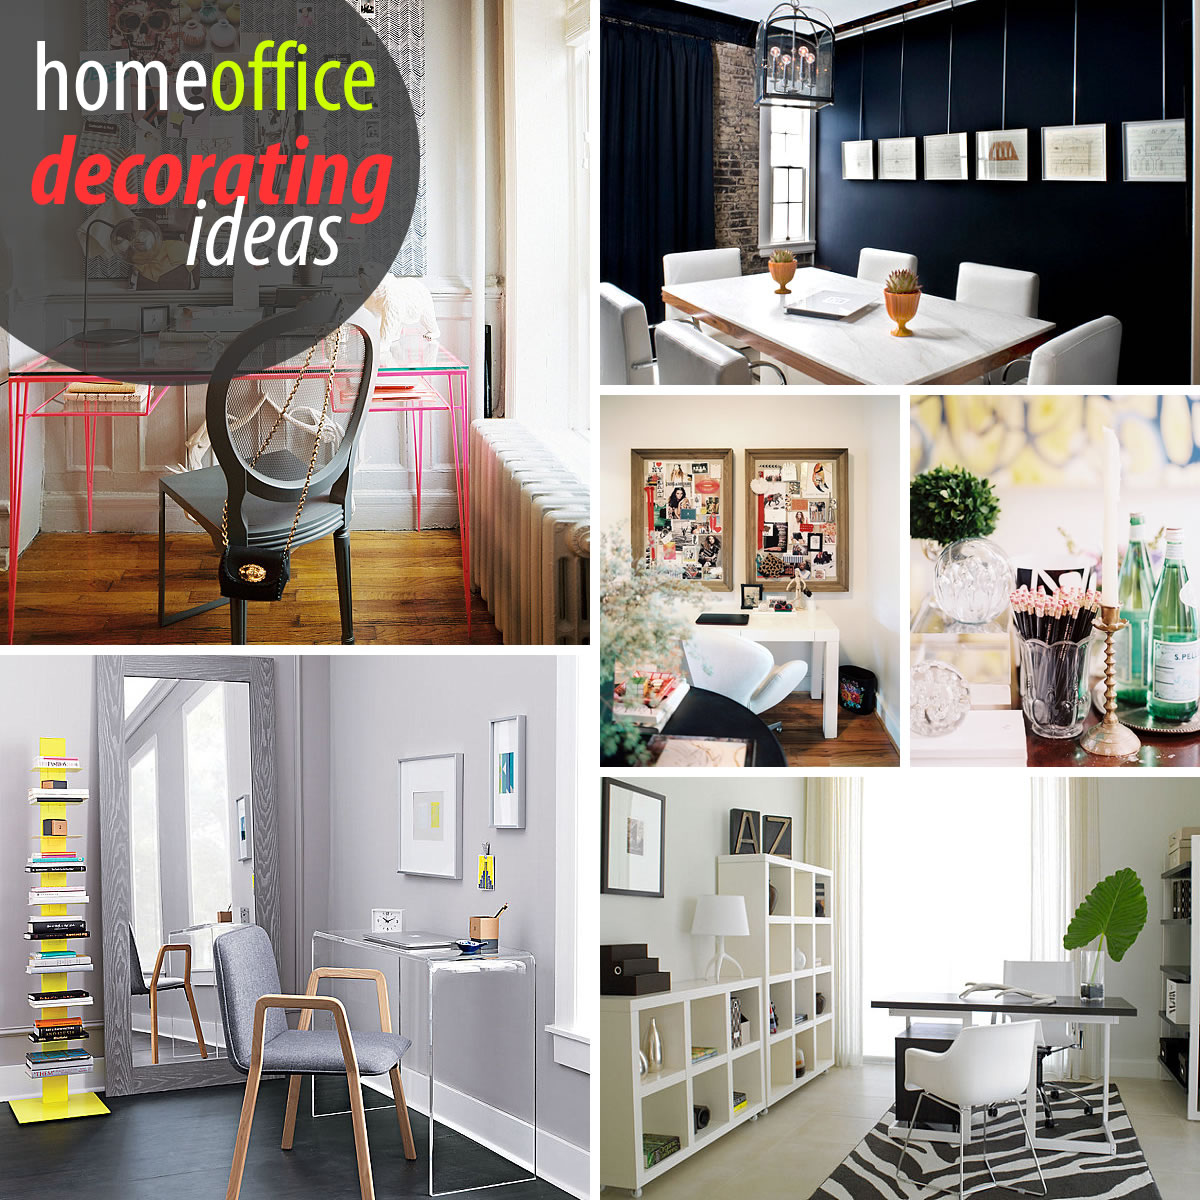 Creative home office decorating ideas - Home office design ideas pictures ...